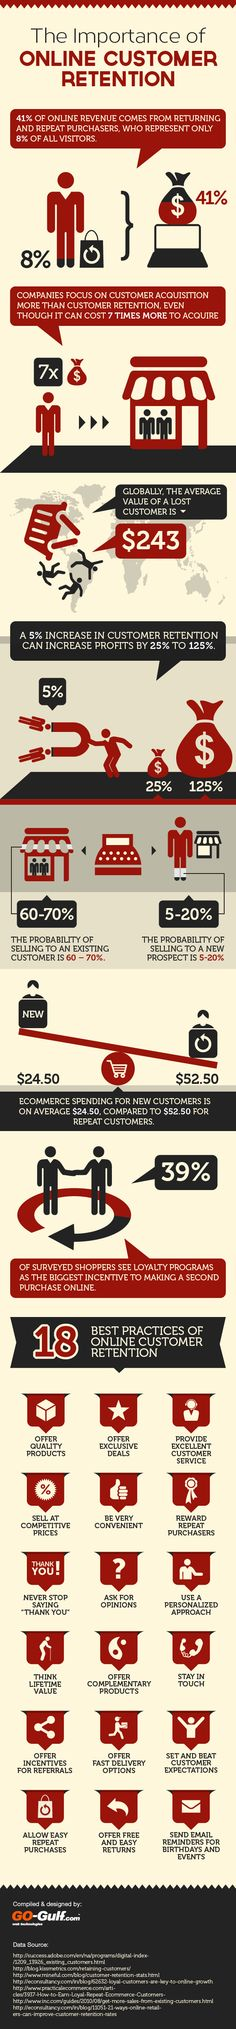 The Importance of Online Customer Retention[INFOGRAPHIC]